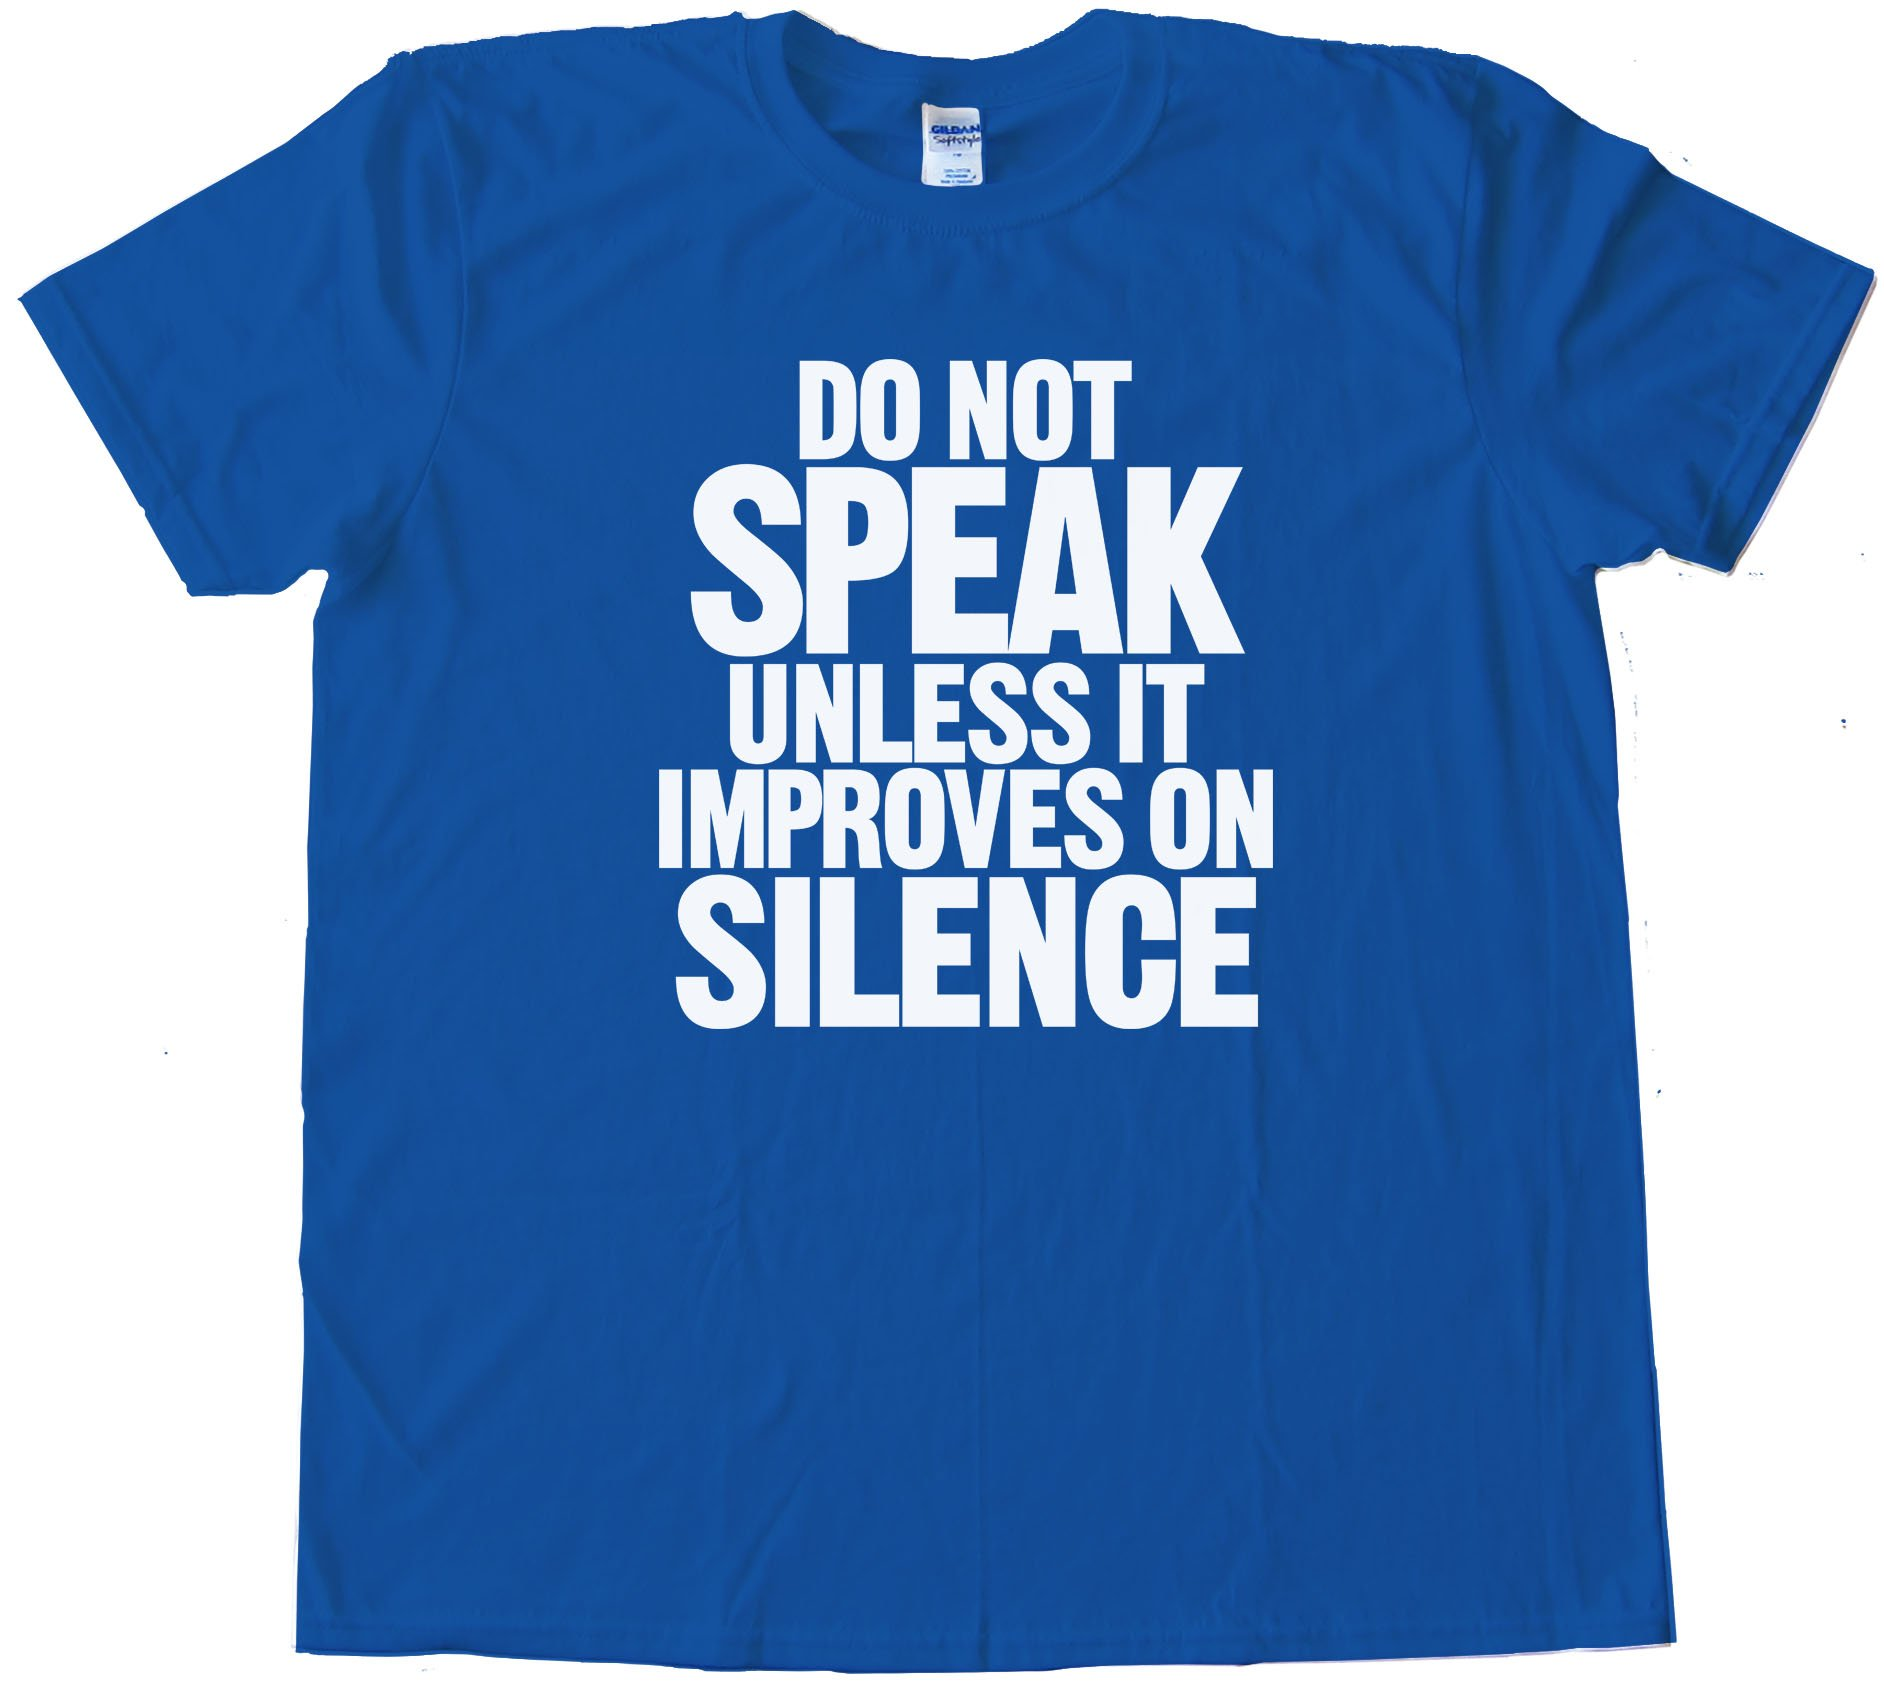 Do Not Speak - Unless It Improves On Silence - Tee Shirt